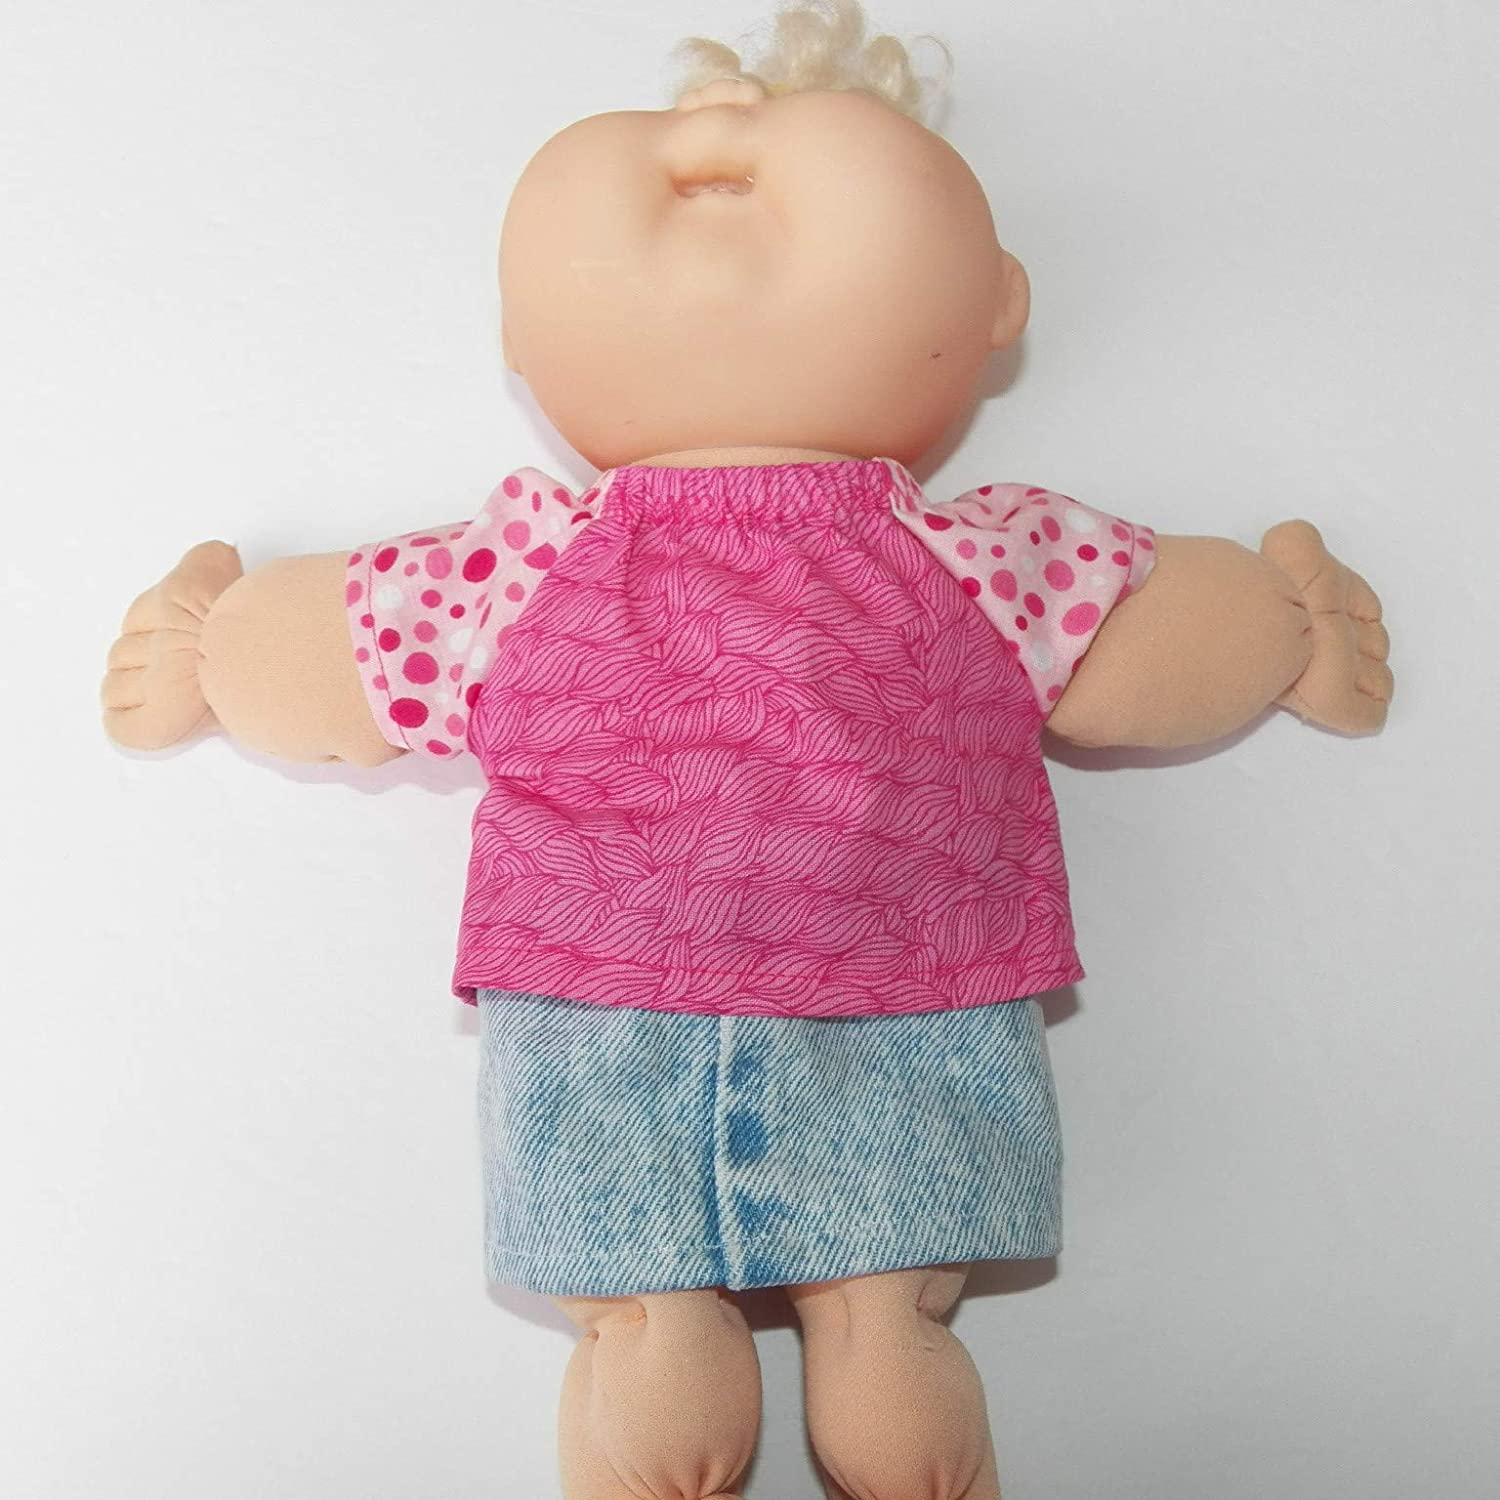 Cabbage Patch Doll Clothes 12 Inch Size Pink Blouse and Denim Skirt Clothes Only